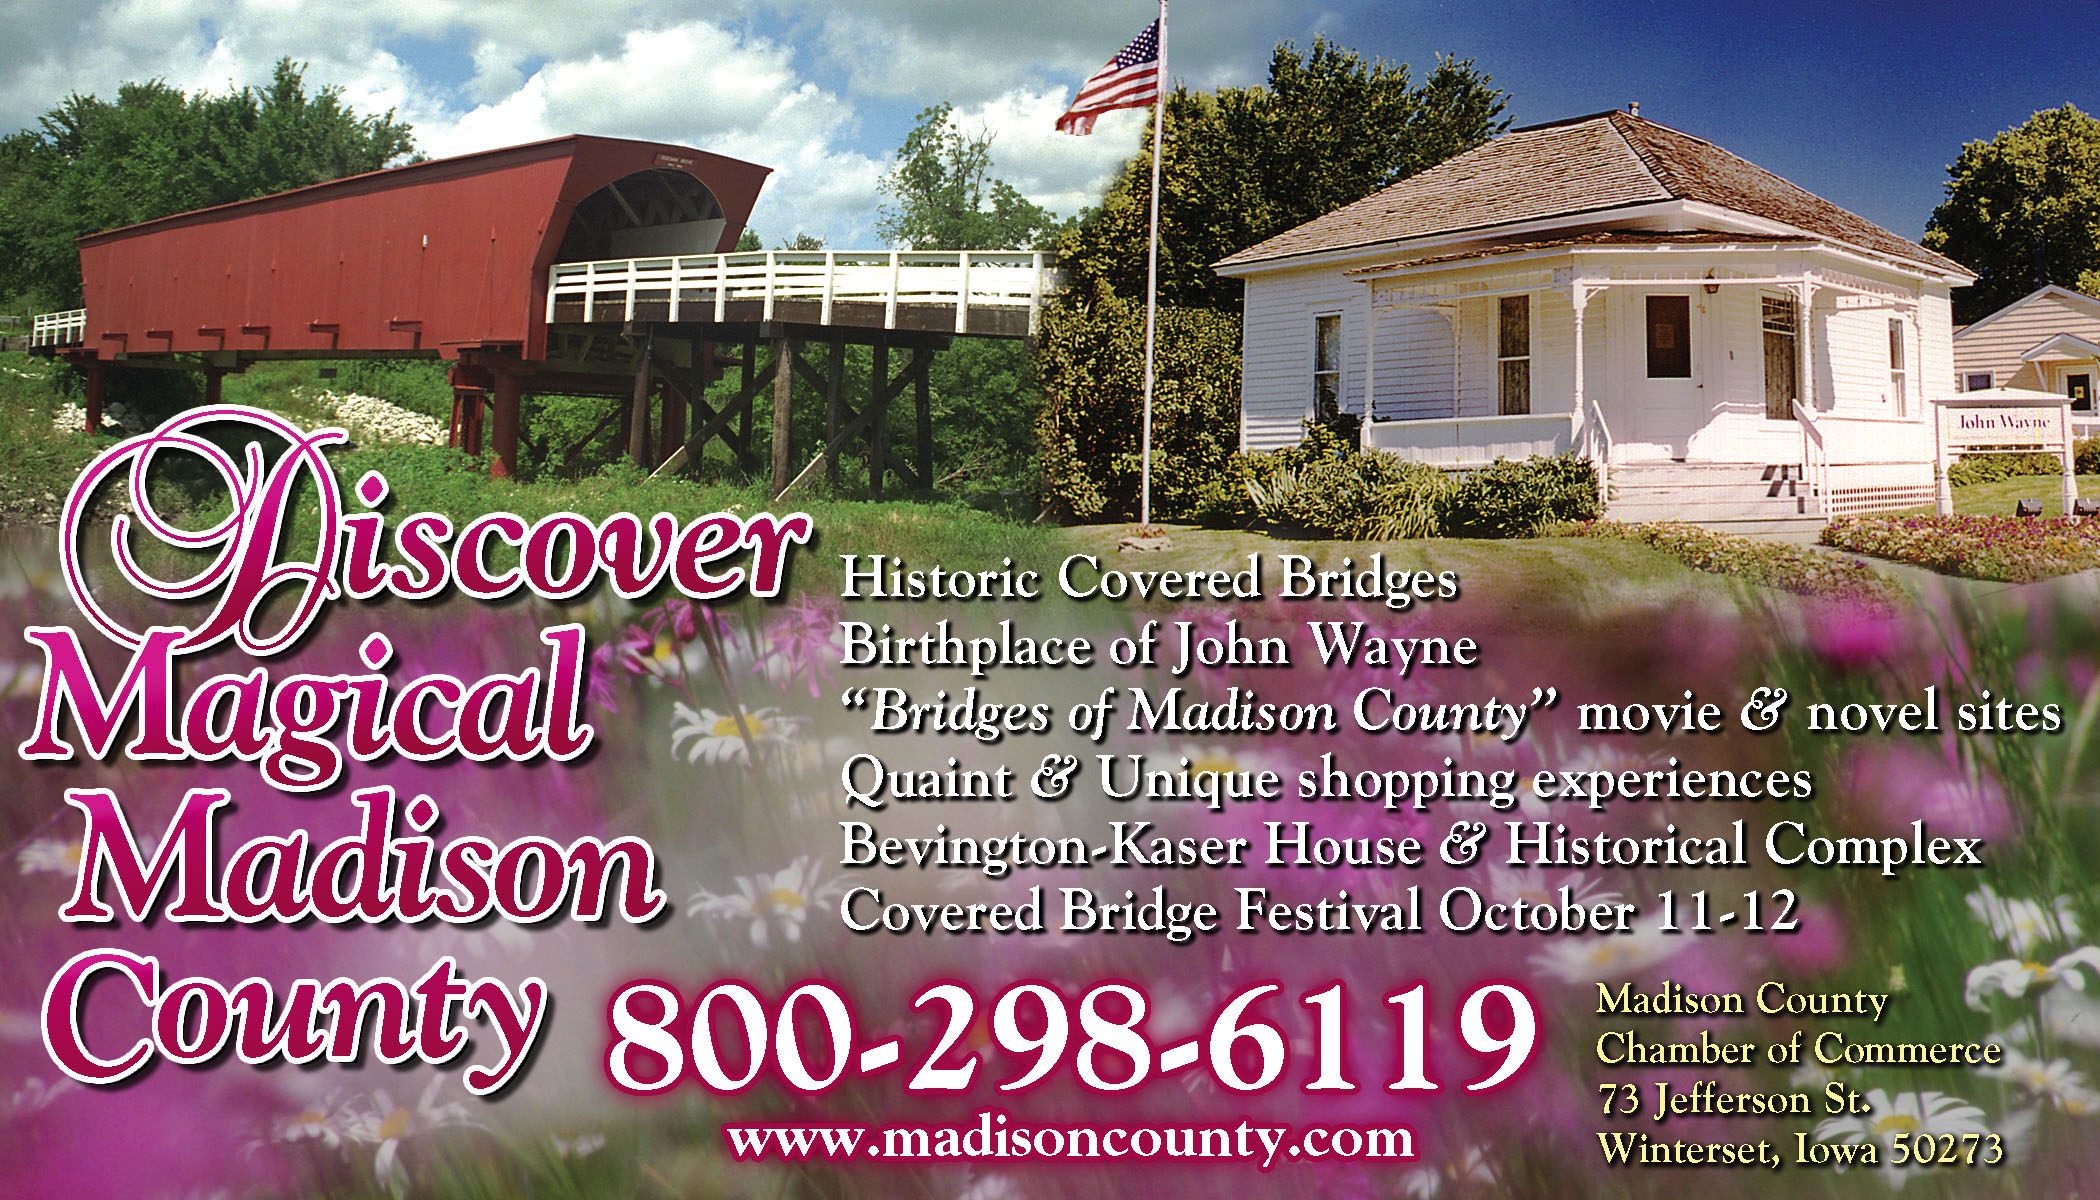 Madison County Travel Guide Ad.jpg